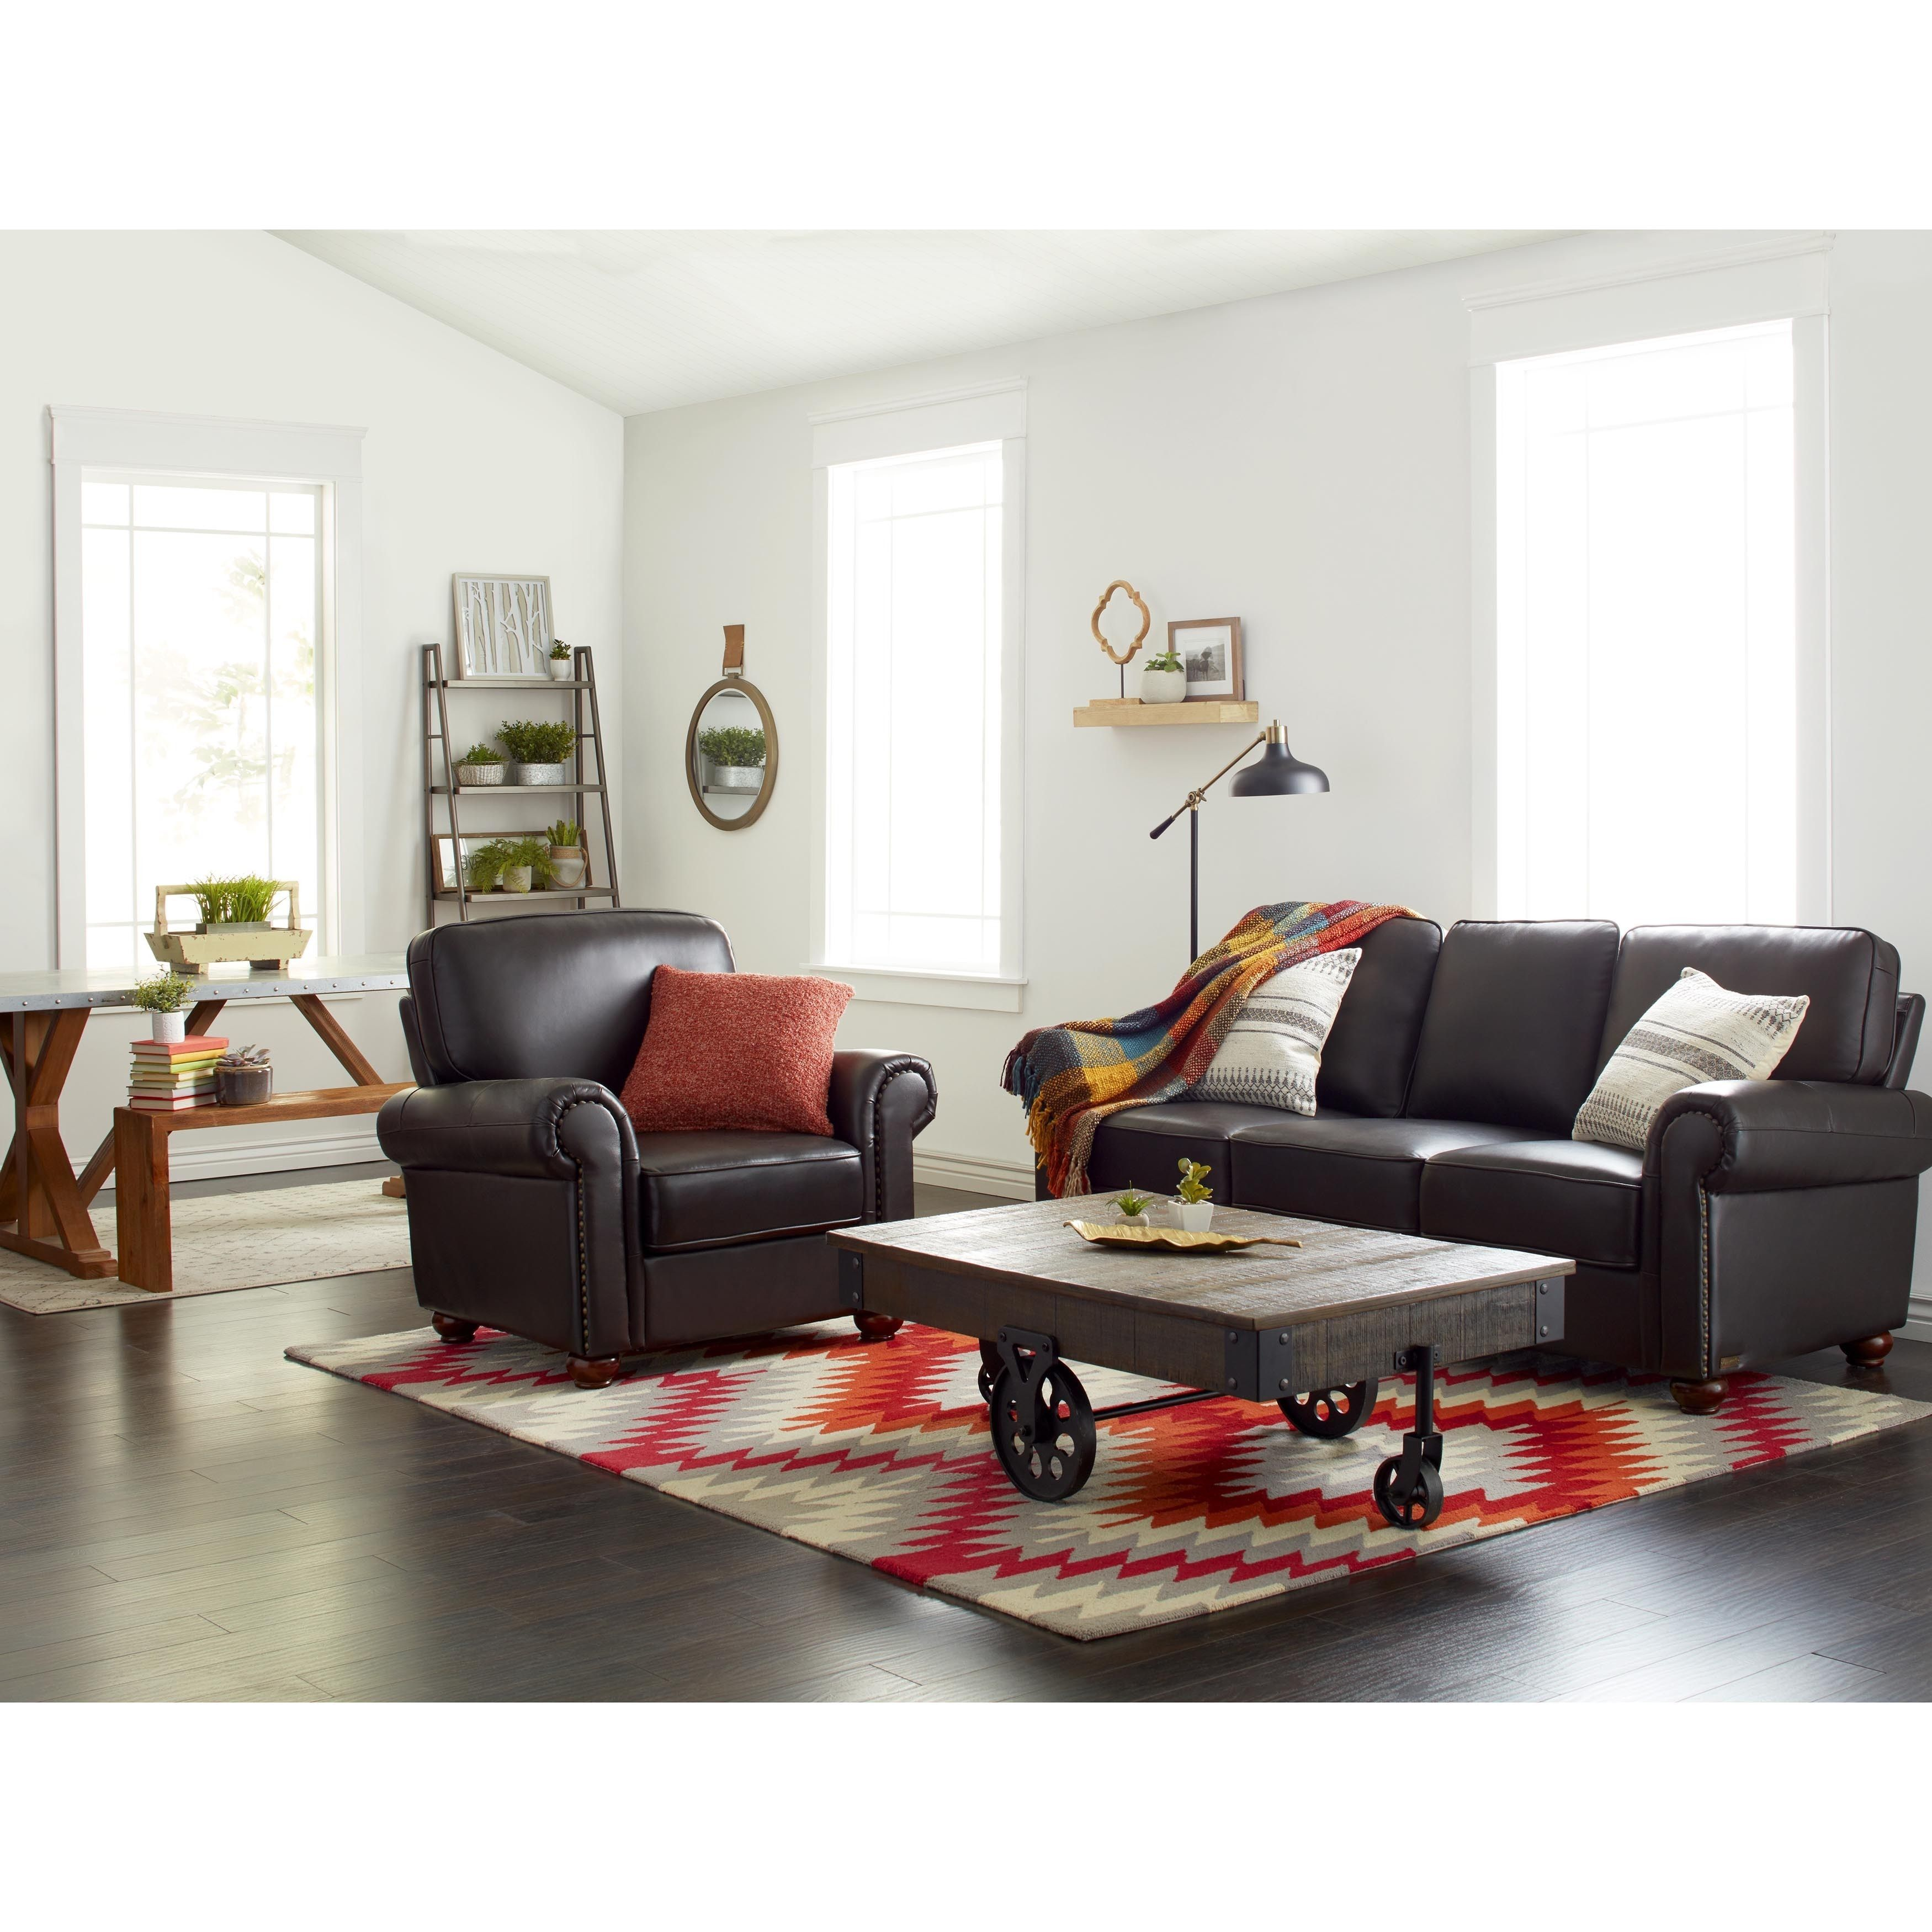 Leather Loveseats Home Goods: Free Shipping on orders over $45 at ...